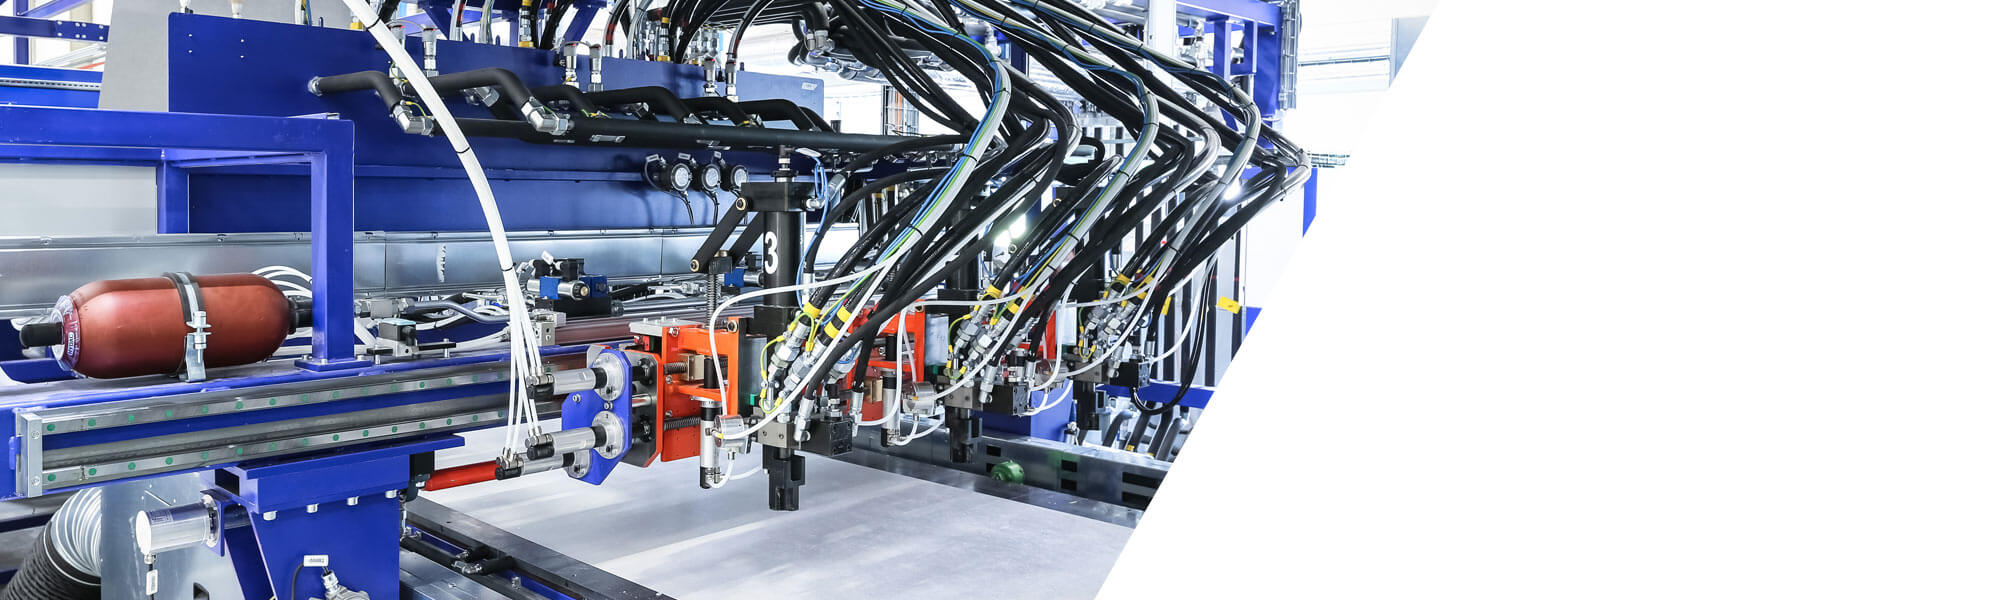 Plant technology for the continuous production of insulating panels with a core structure made of polyurethane